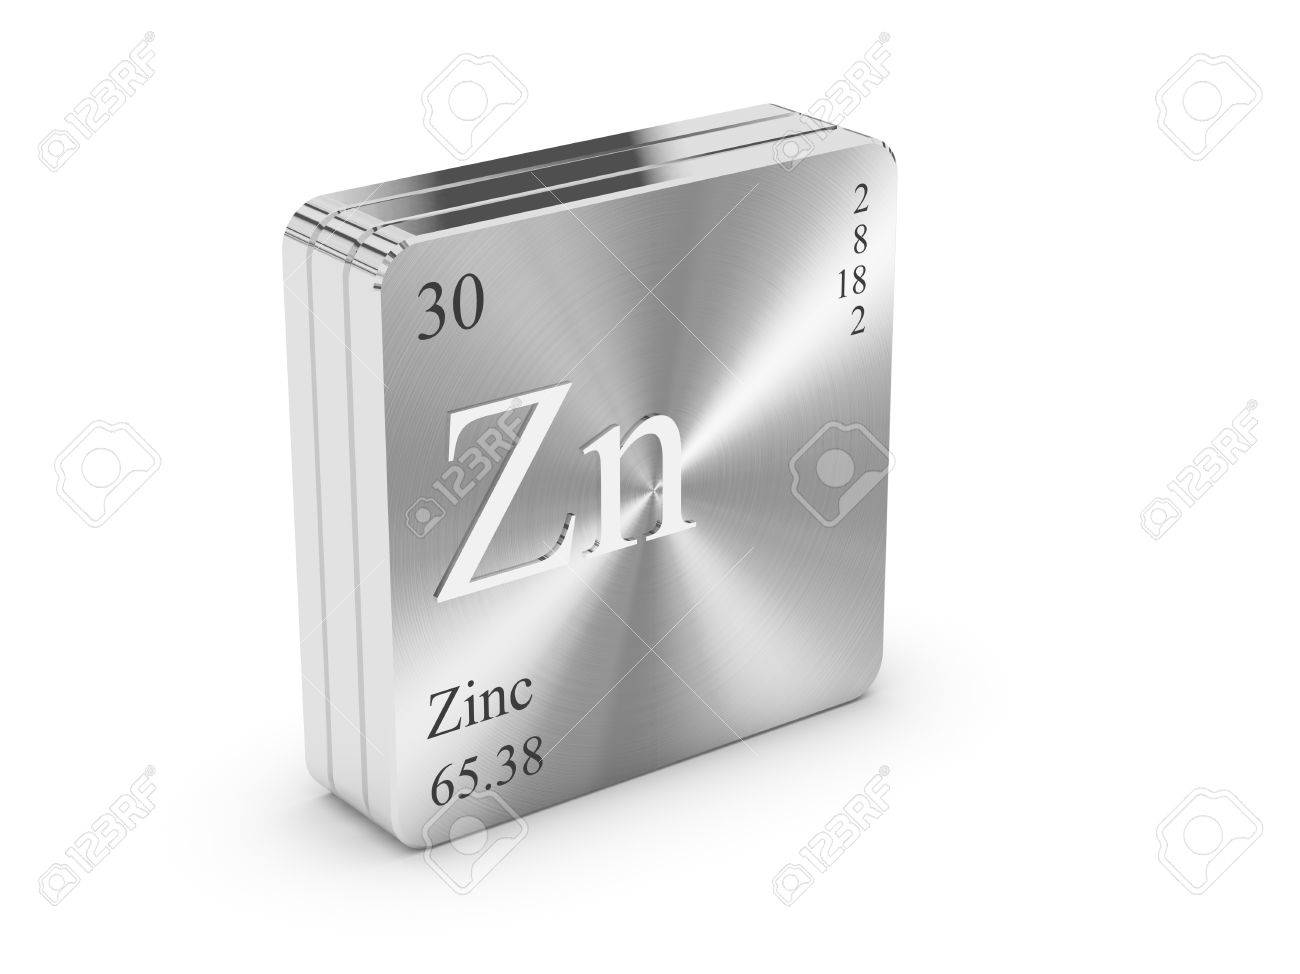 Zinc - Element Of The Periodic Table On Metal Steel Block Stock ...